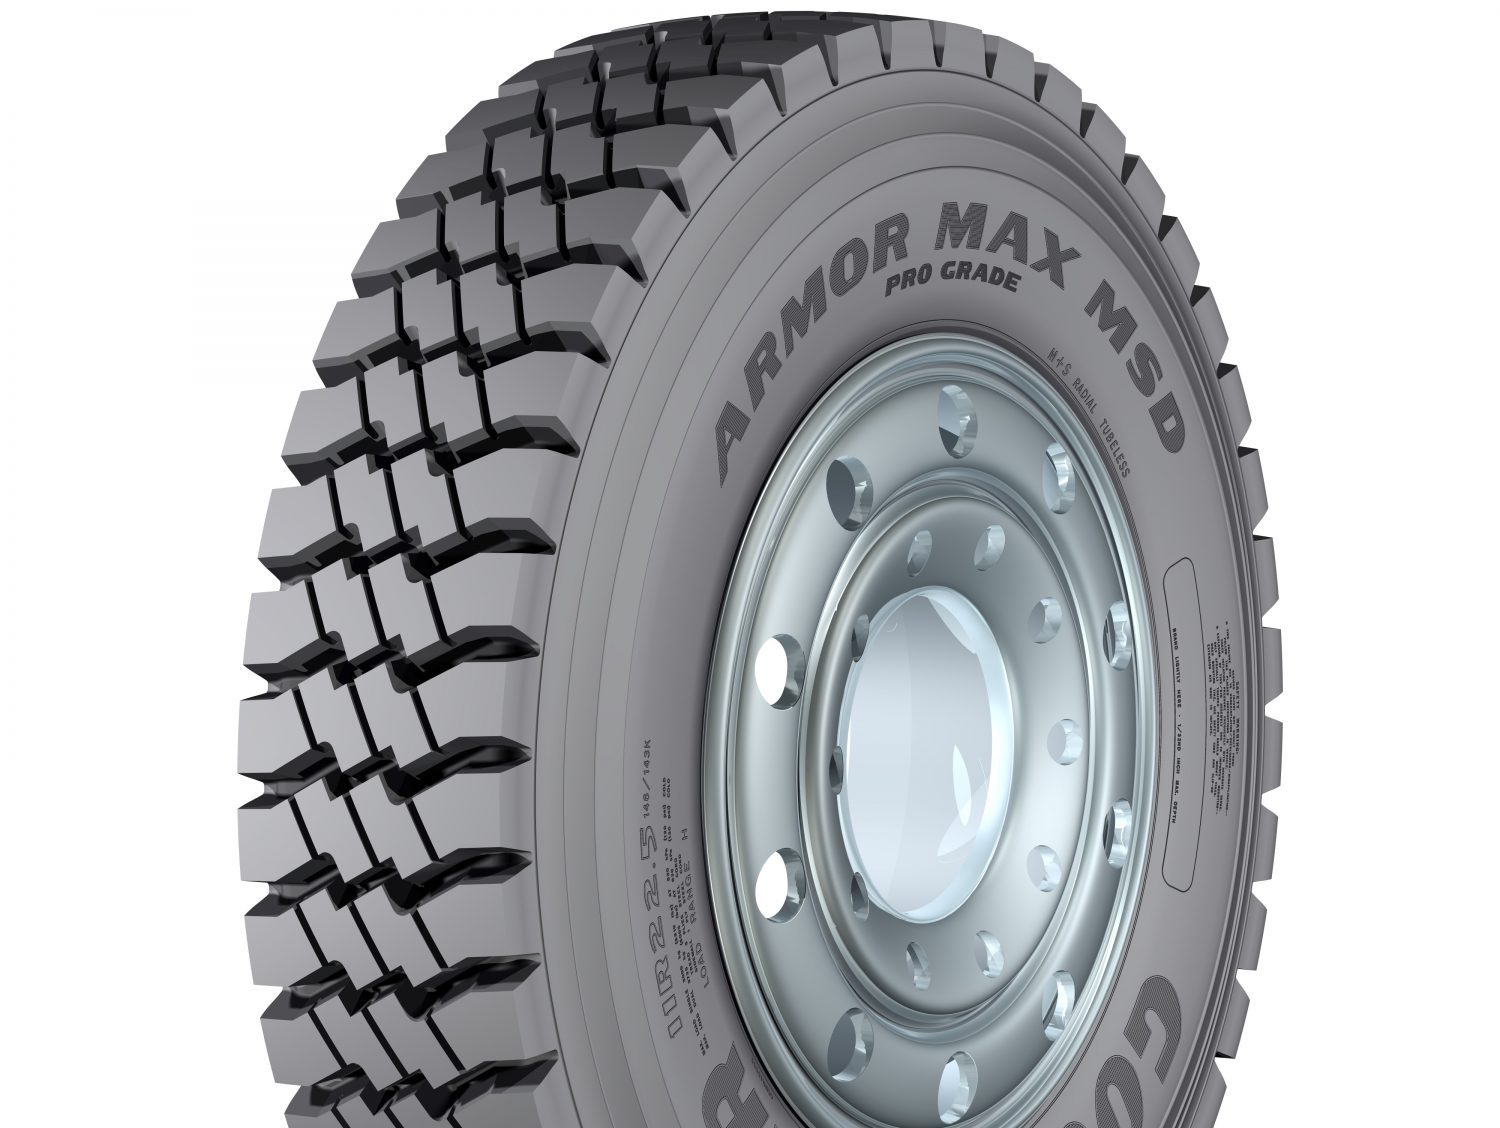 Here's the deal: Goodyear's Workhorse and Armor Max Pro